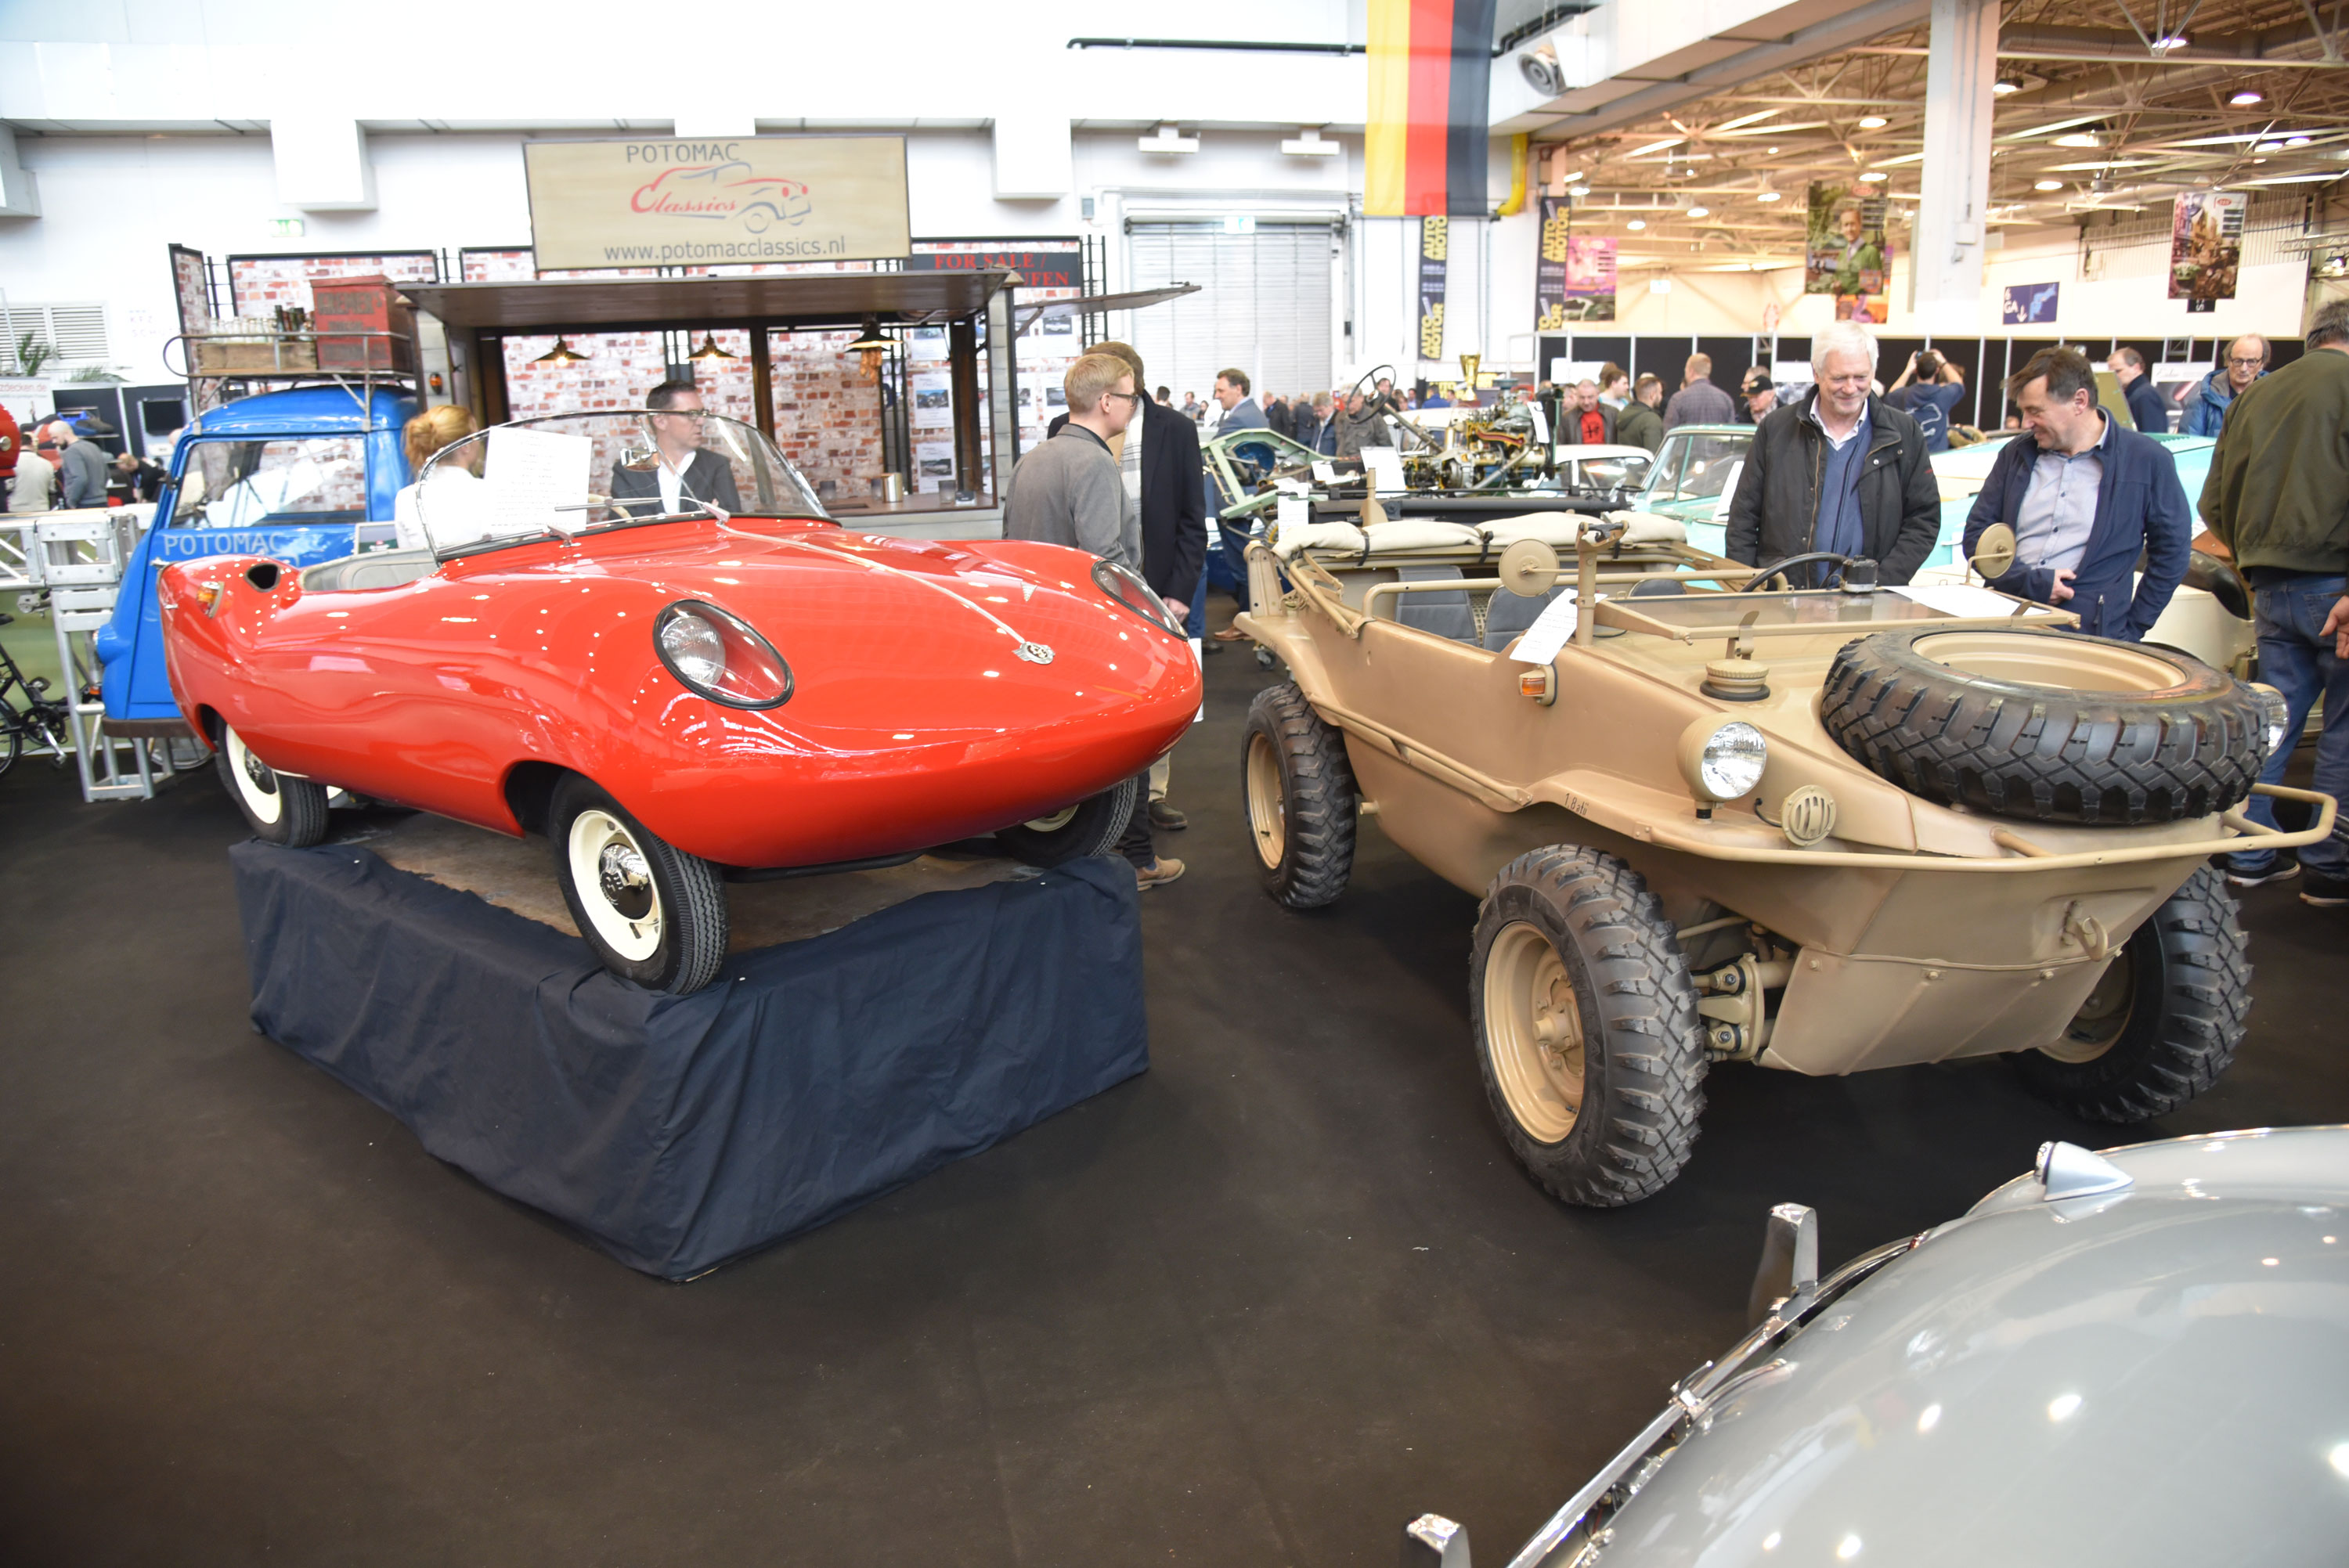 """In the weird-and-German department, a 1960 Goggomobile Dart based on a Geraman Goggomobile microcar chassis but actually built in Australia, and a World War II VW Type 166 Schwimmwagen (literally: Swimming Car) shared a booth. With its 392-cc two-cylinder two-stroke engine on the back axle, the 800-pound Dart was built for three years with around 700 made, while the """"Schwimmer"""" was basically an amphibious form of the VW Kubelwagen. Both are highly collectible today."""